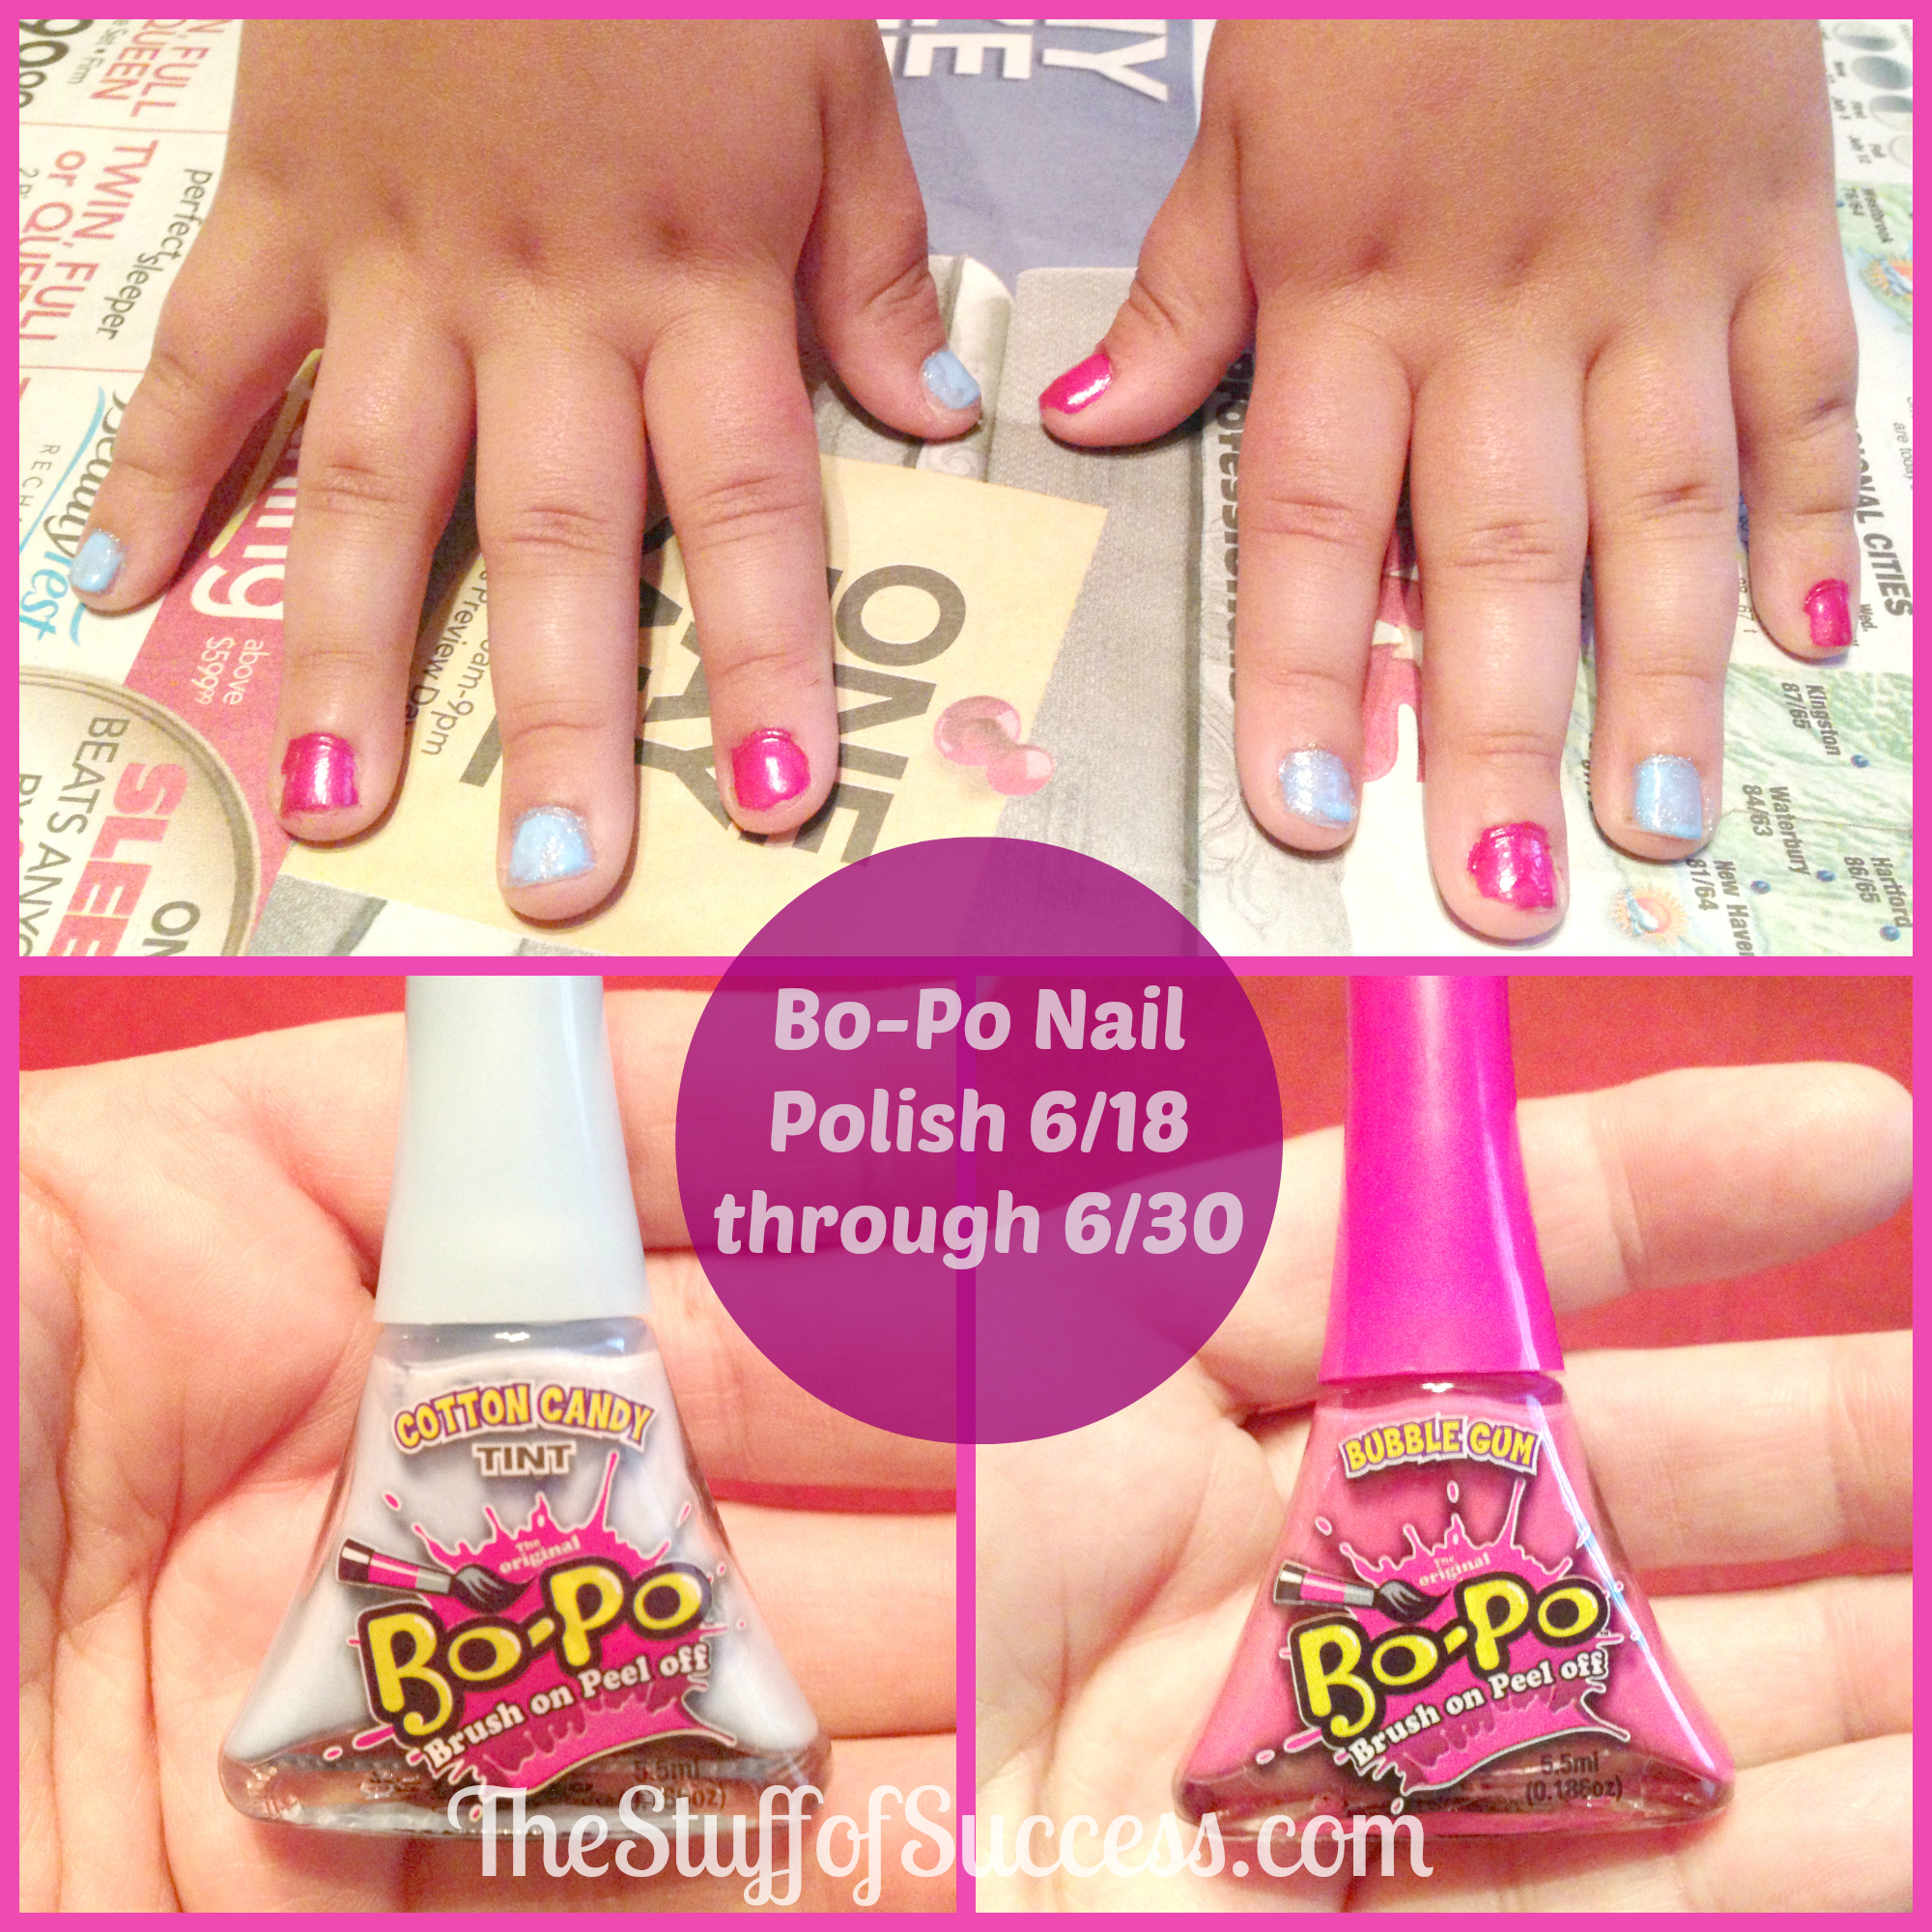 My Devotional Thoughts | Bo-Po Nail Polish Giveaway (ends 6/30) U.S.